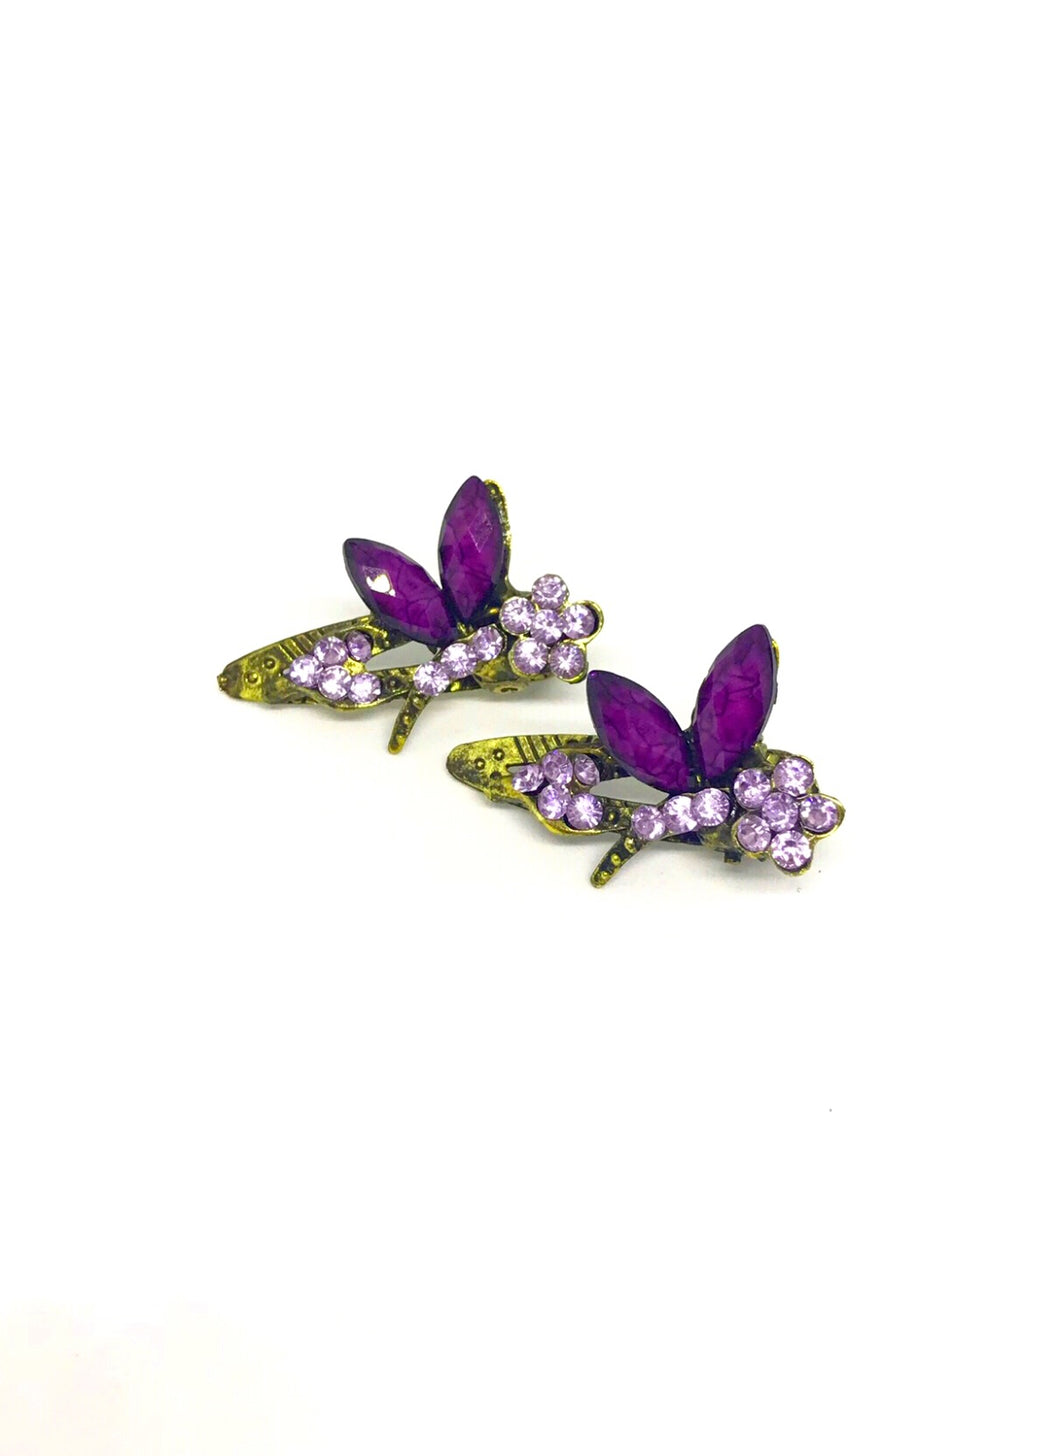 Colorful Crystal Magical Butterfly Hair Clips 2 per set